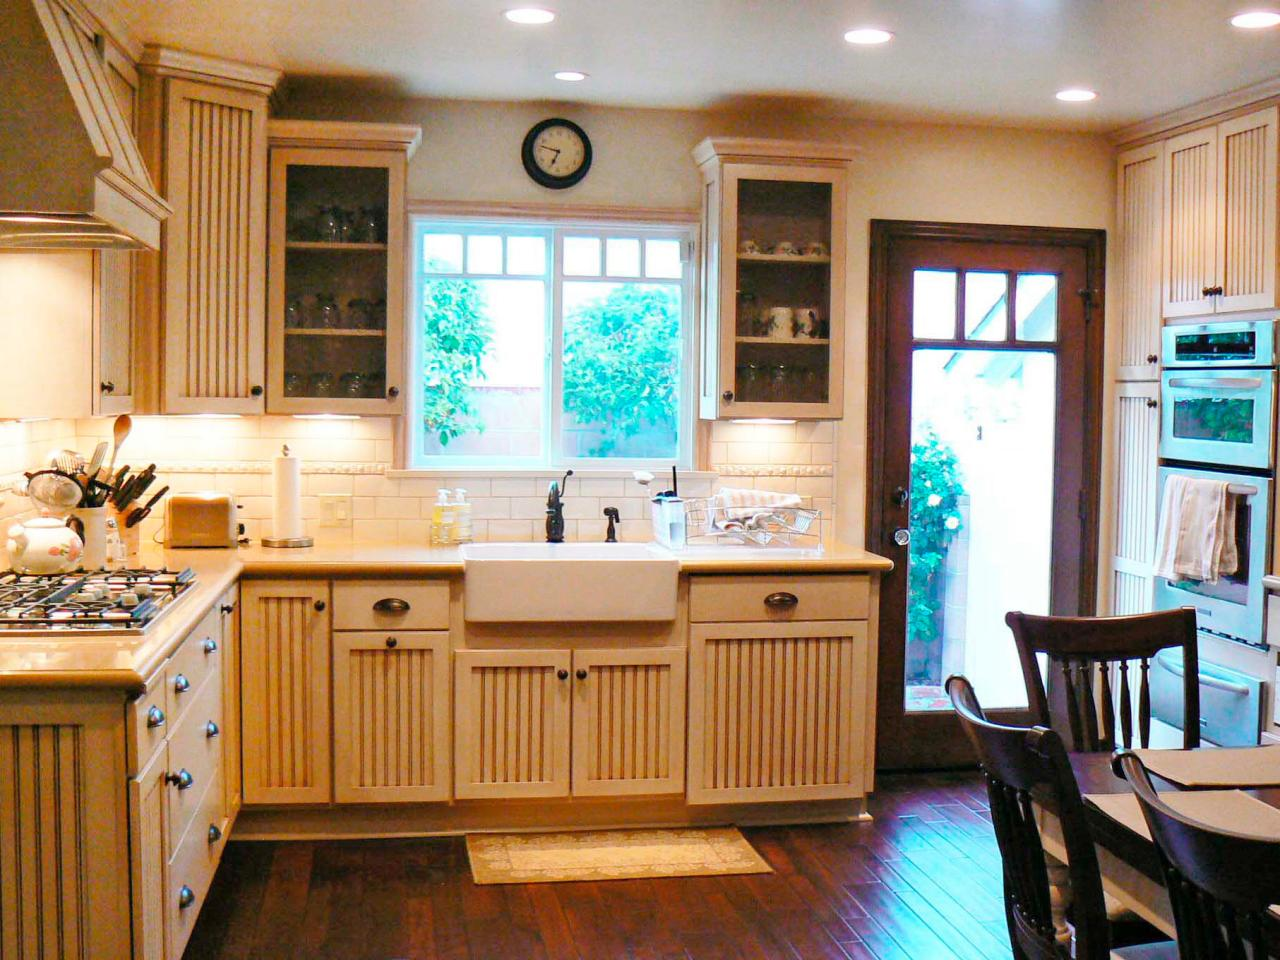 hgtv u shaped kitchen designs photo - 1